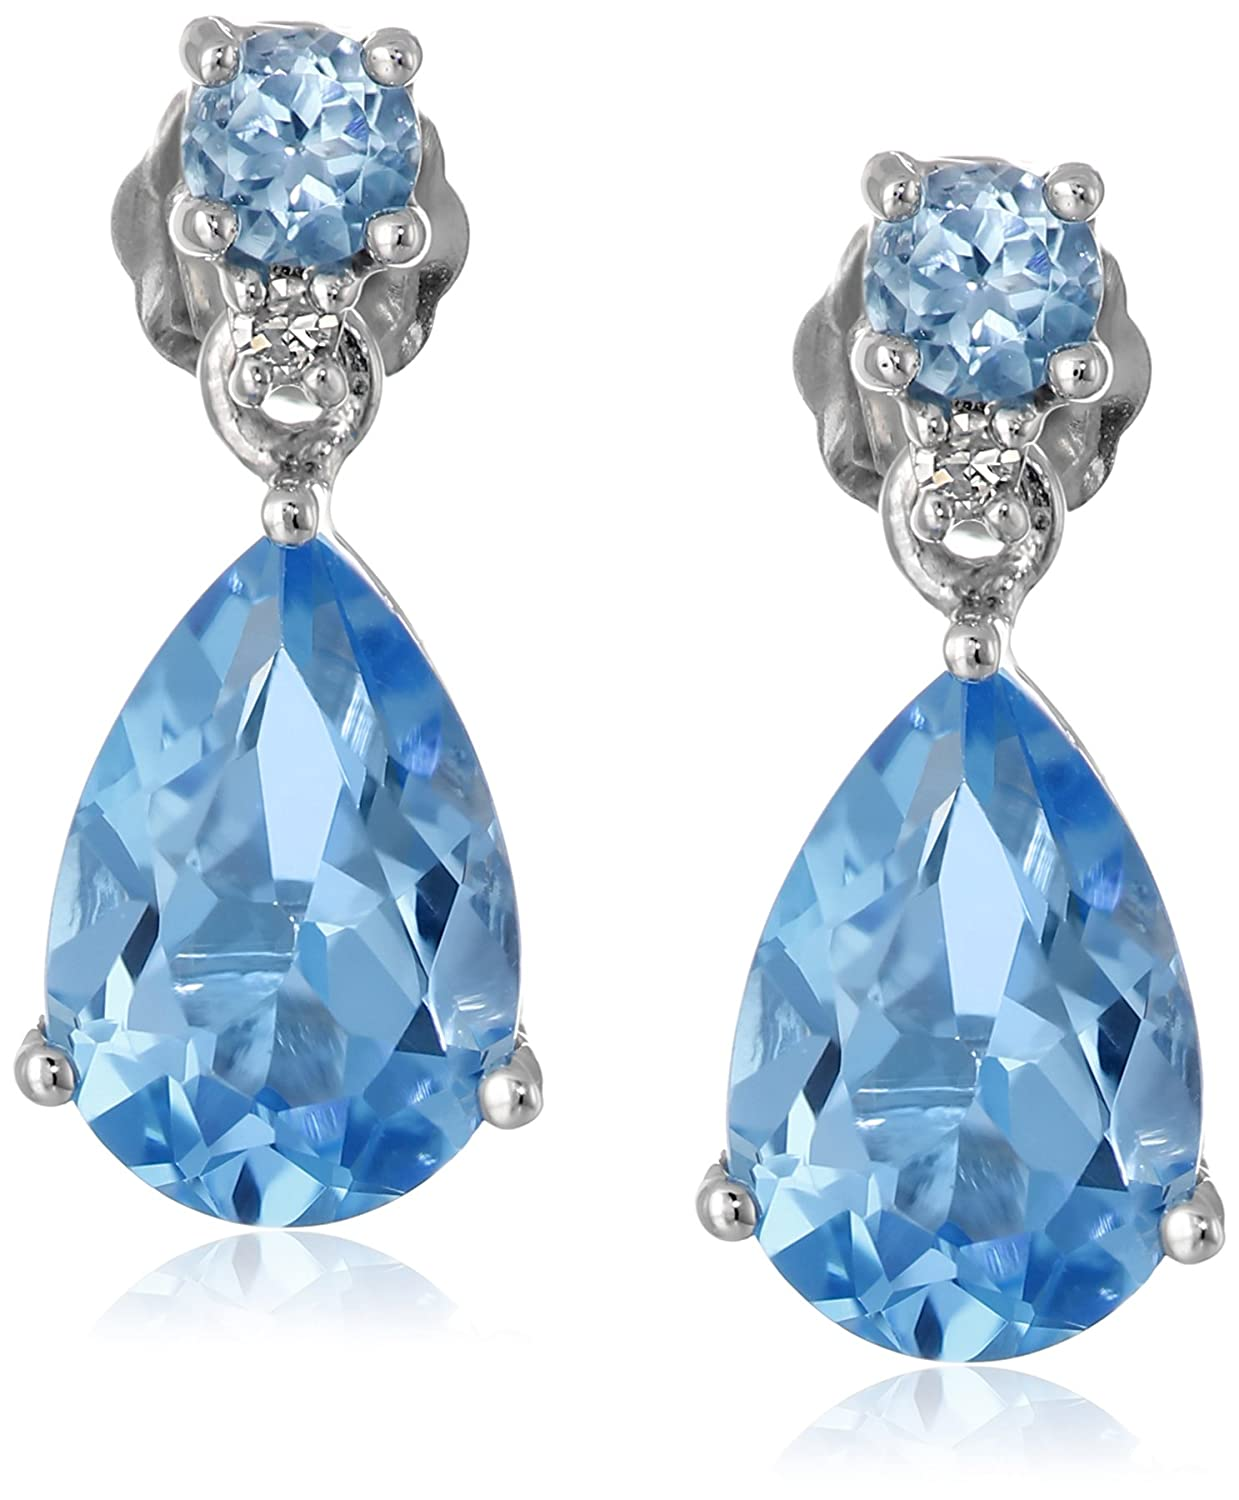 10k White Gold Blue Topaz Pear-Shaped Drop Earrings with Diamond Accent